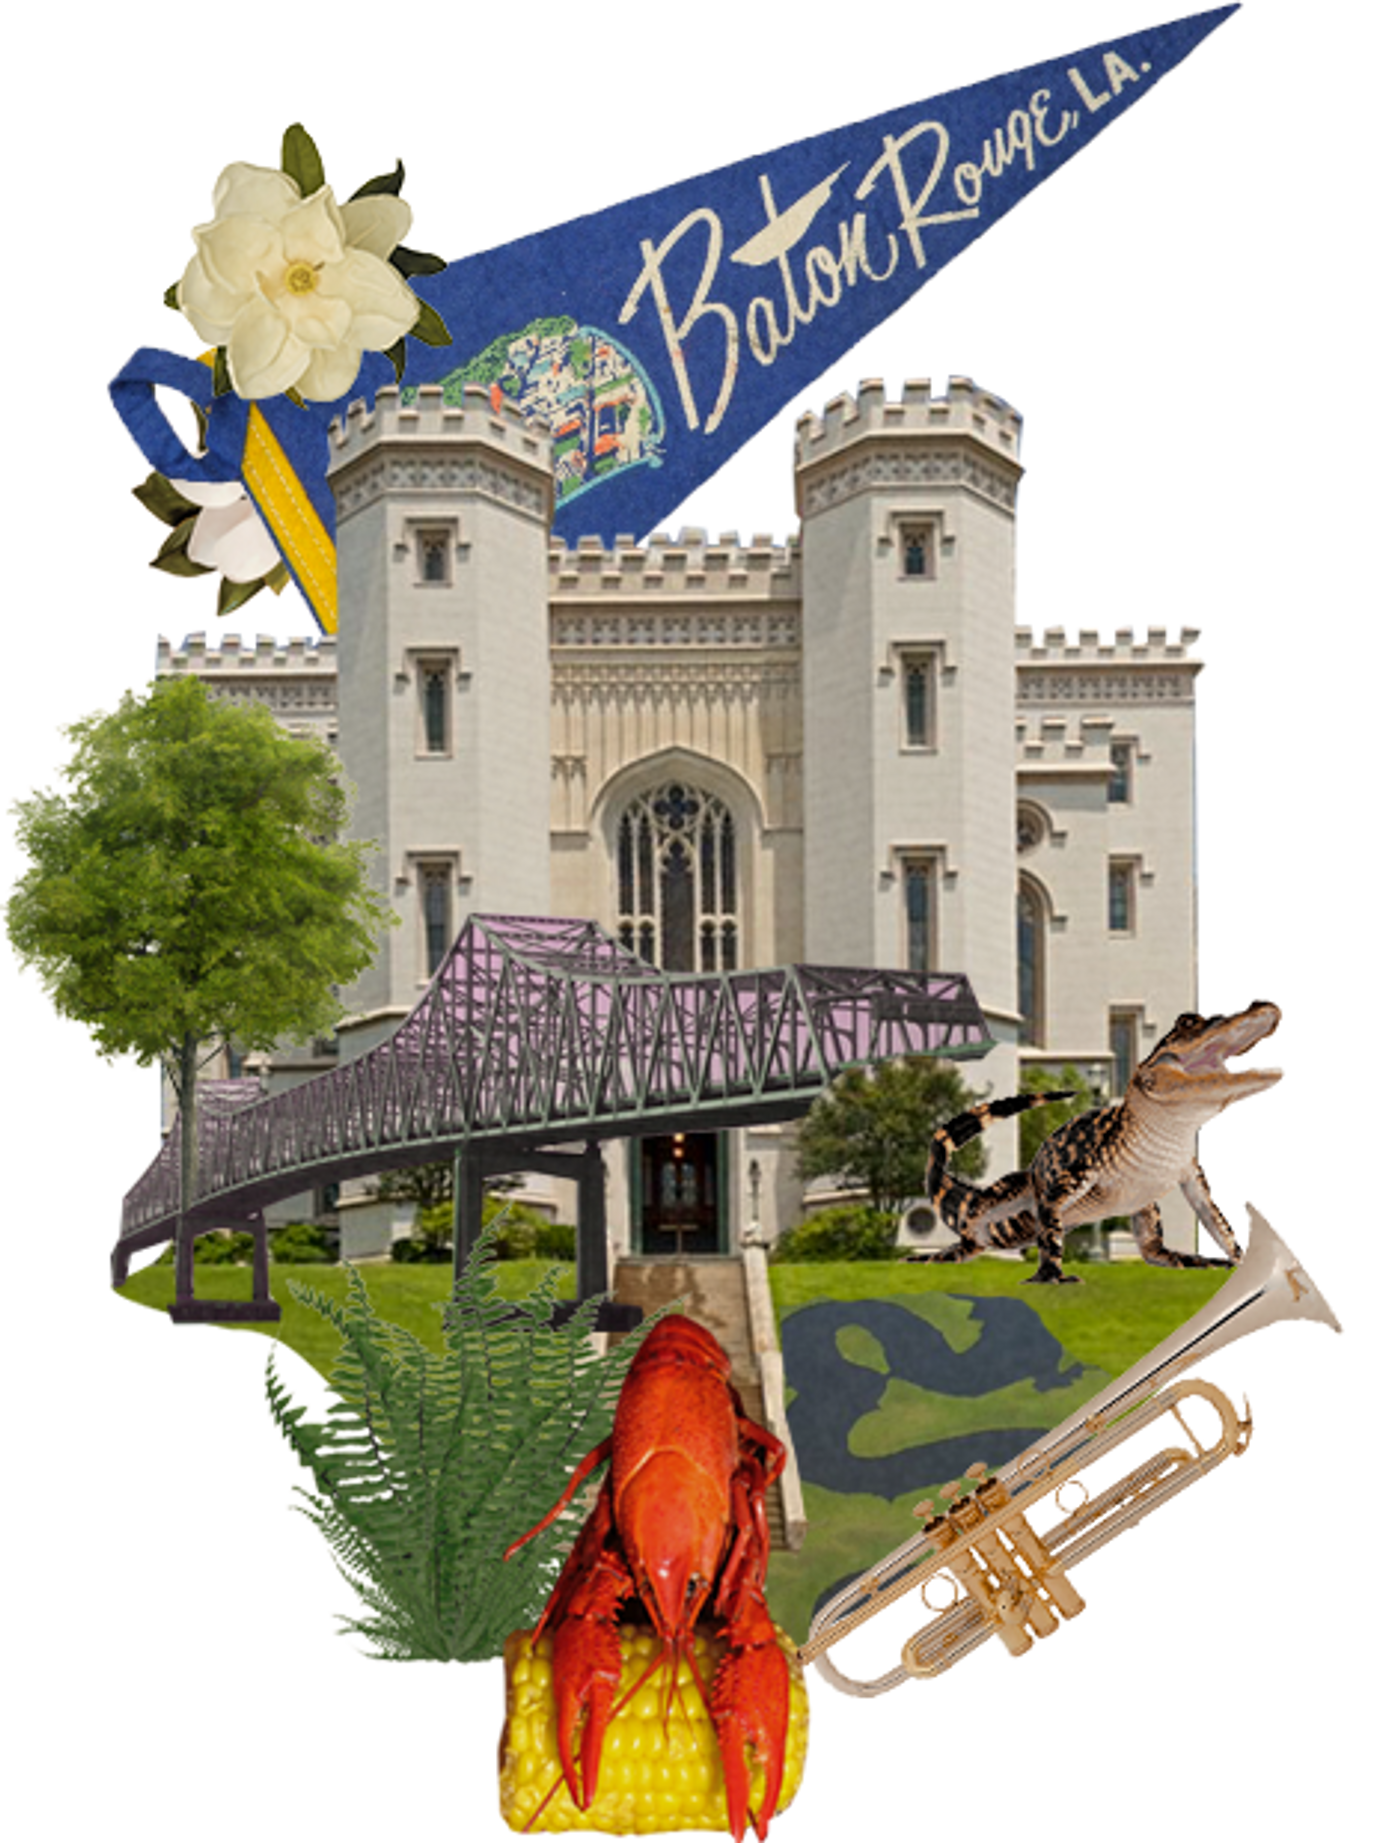 Collage of the city of Baton Rouge with crawfish and alligator.